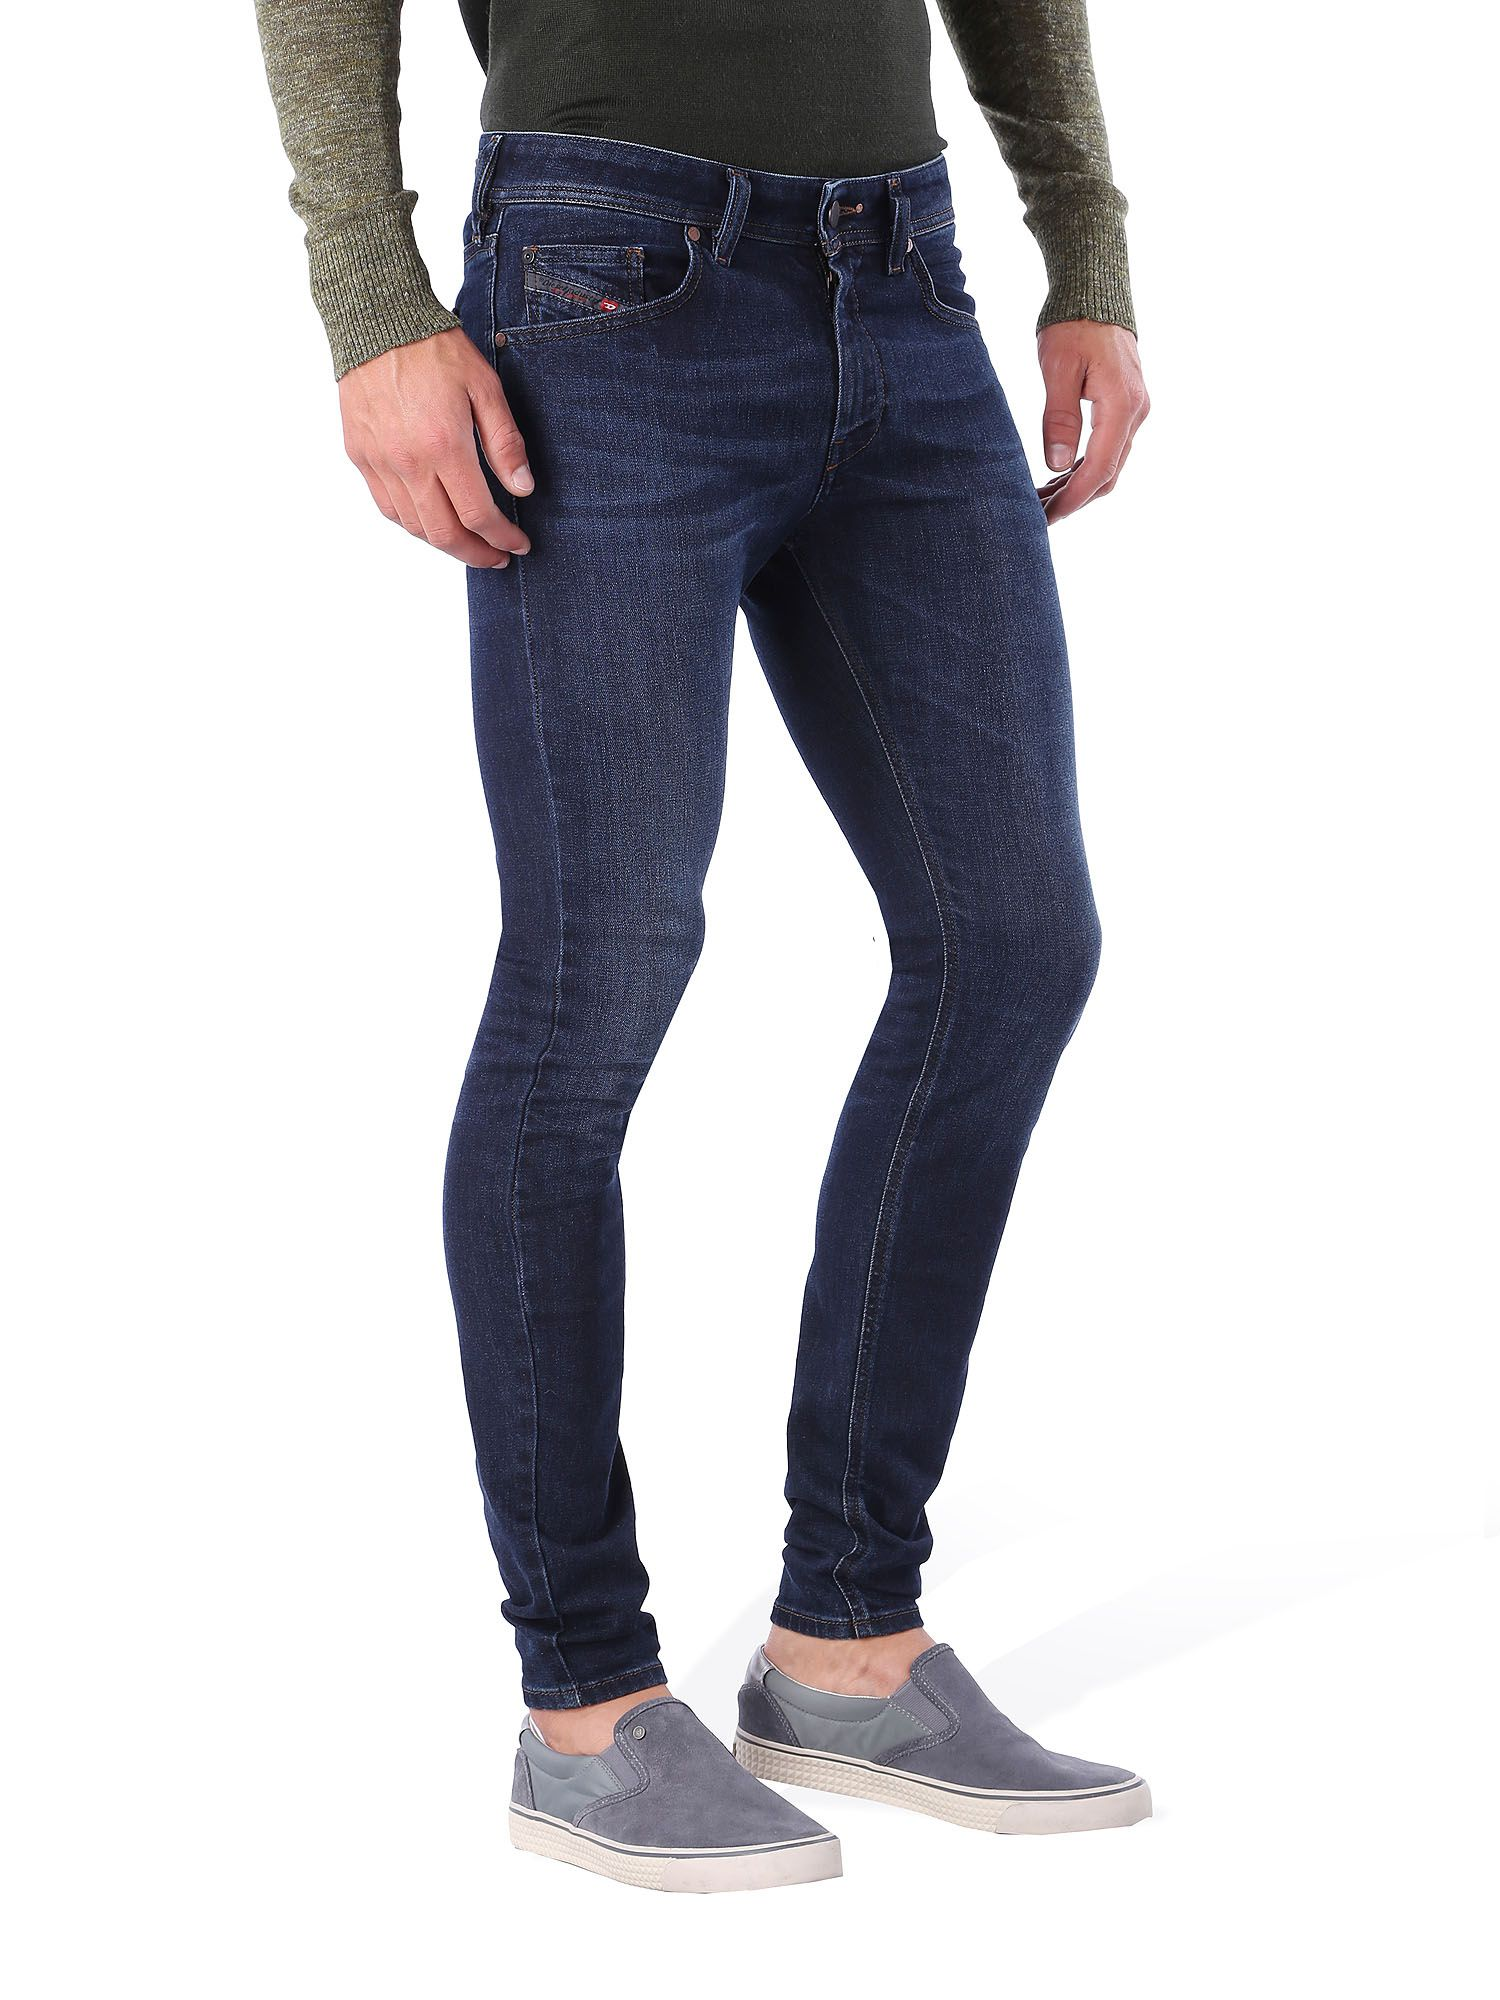 10 ultimate super extreme skinny jeans for men the jeans